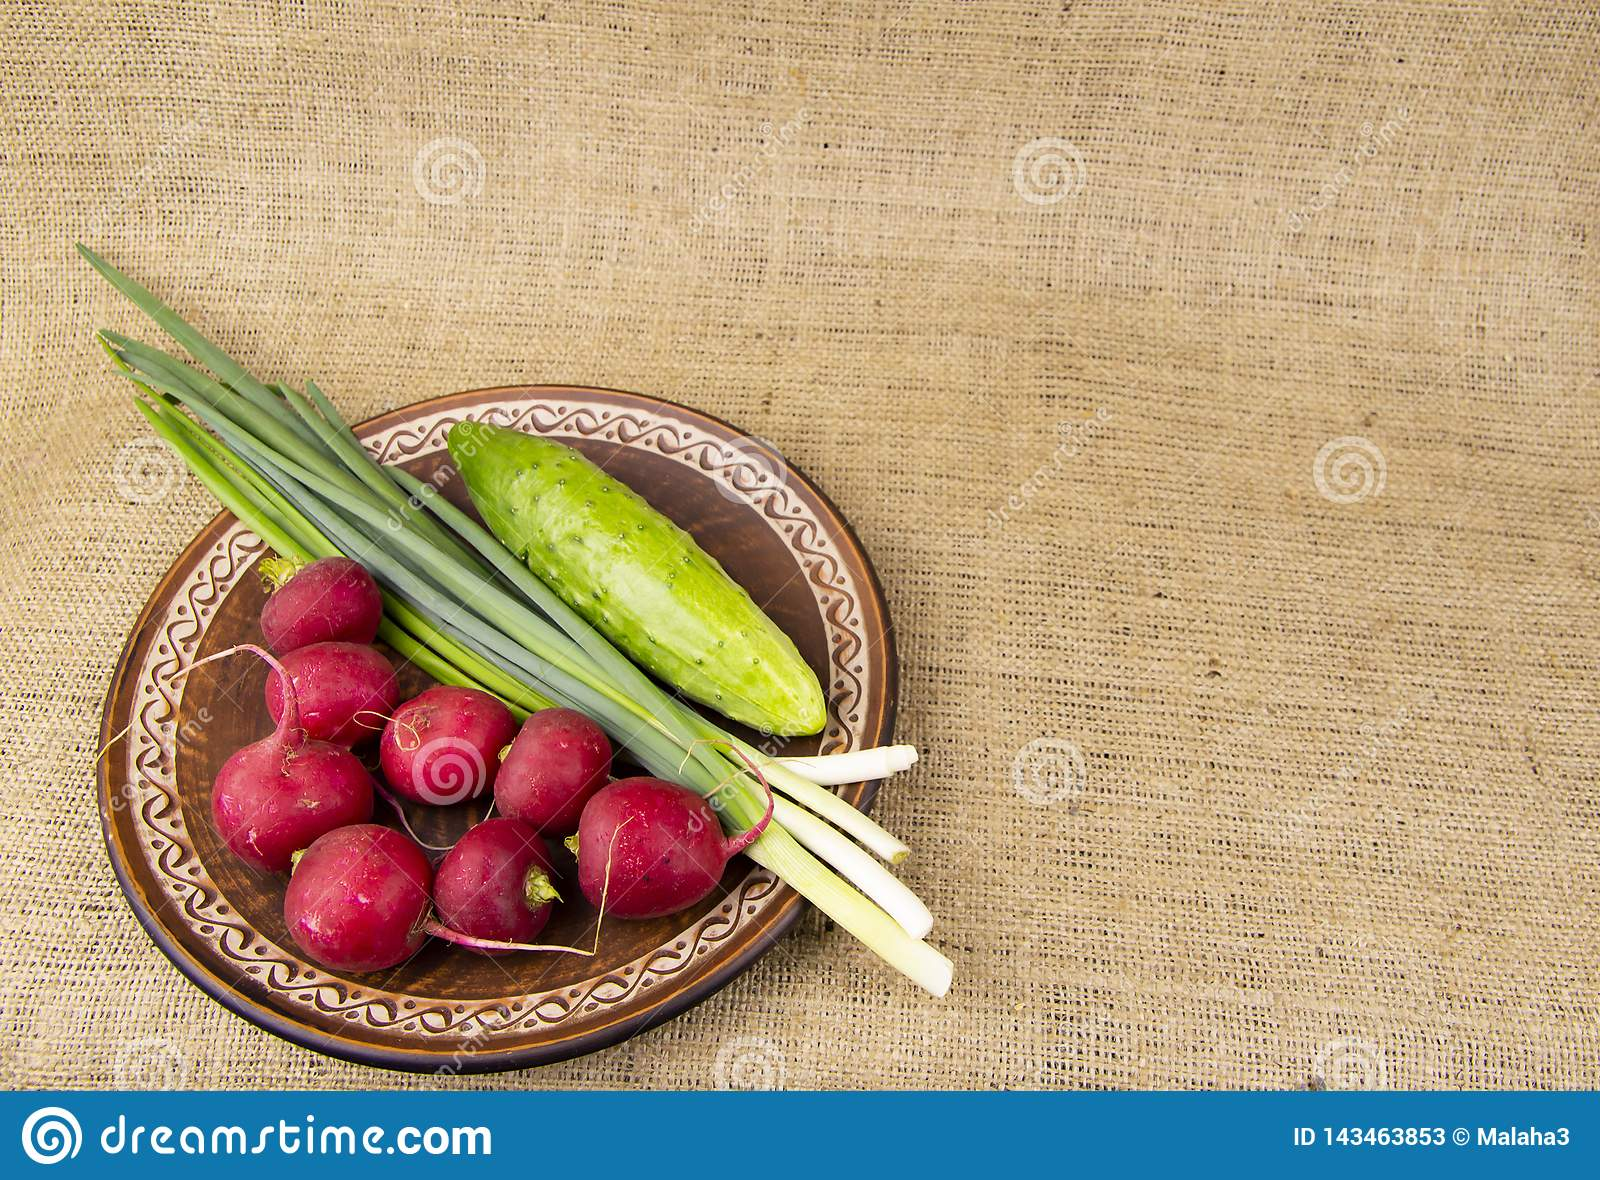 Fresh vegetables on a plate - radishes, onions, cucumbers